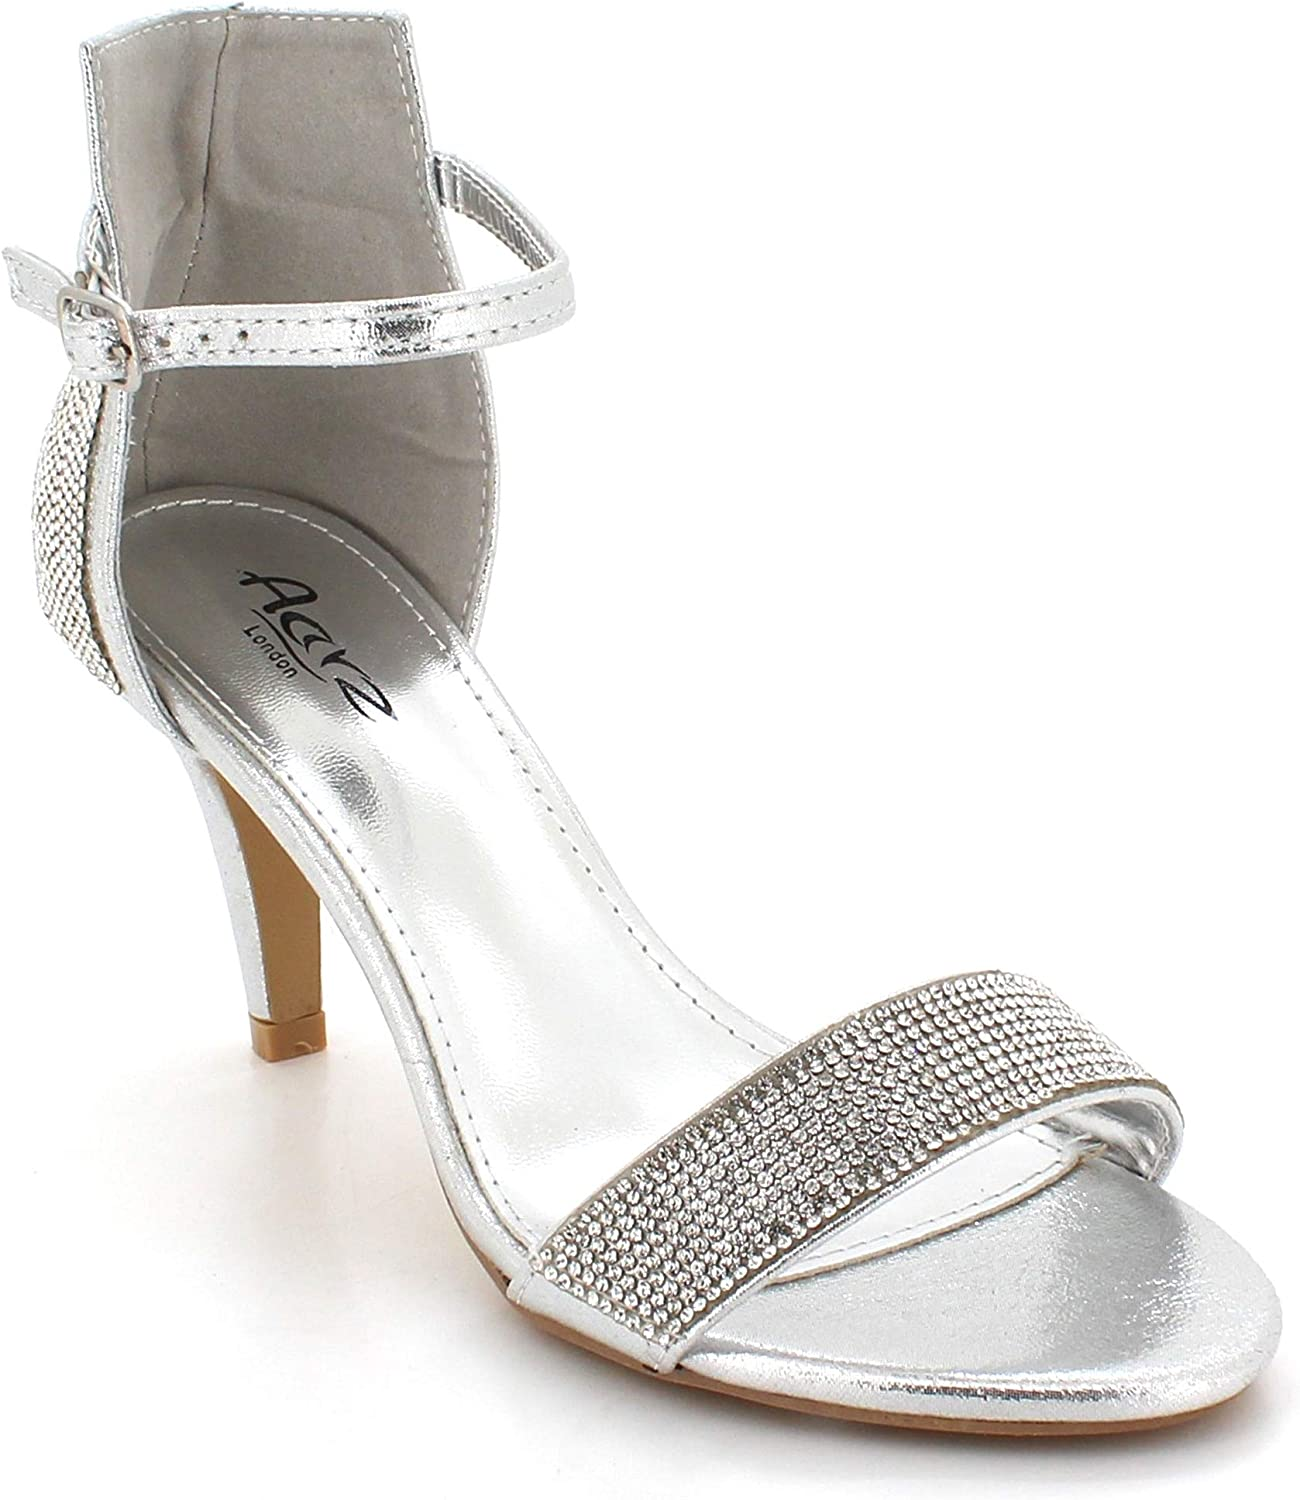 AARZ LONDON Womens Ladies Diamante Studded Sparkly Open Toe Evening Wedding Party Prom Bridal Medium Heel Sandals Shoes Size